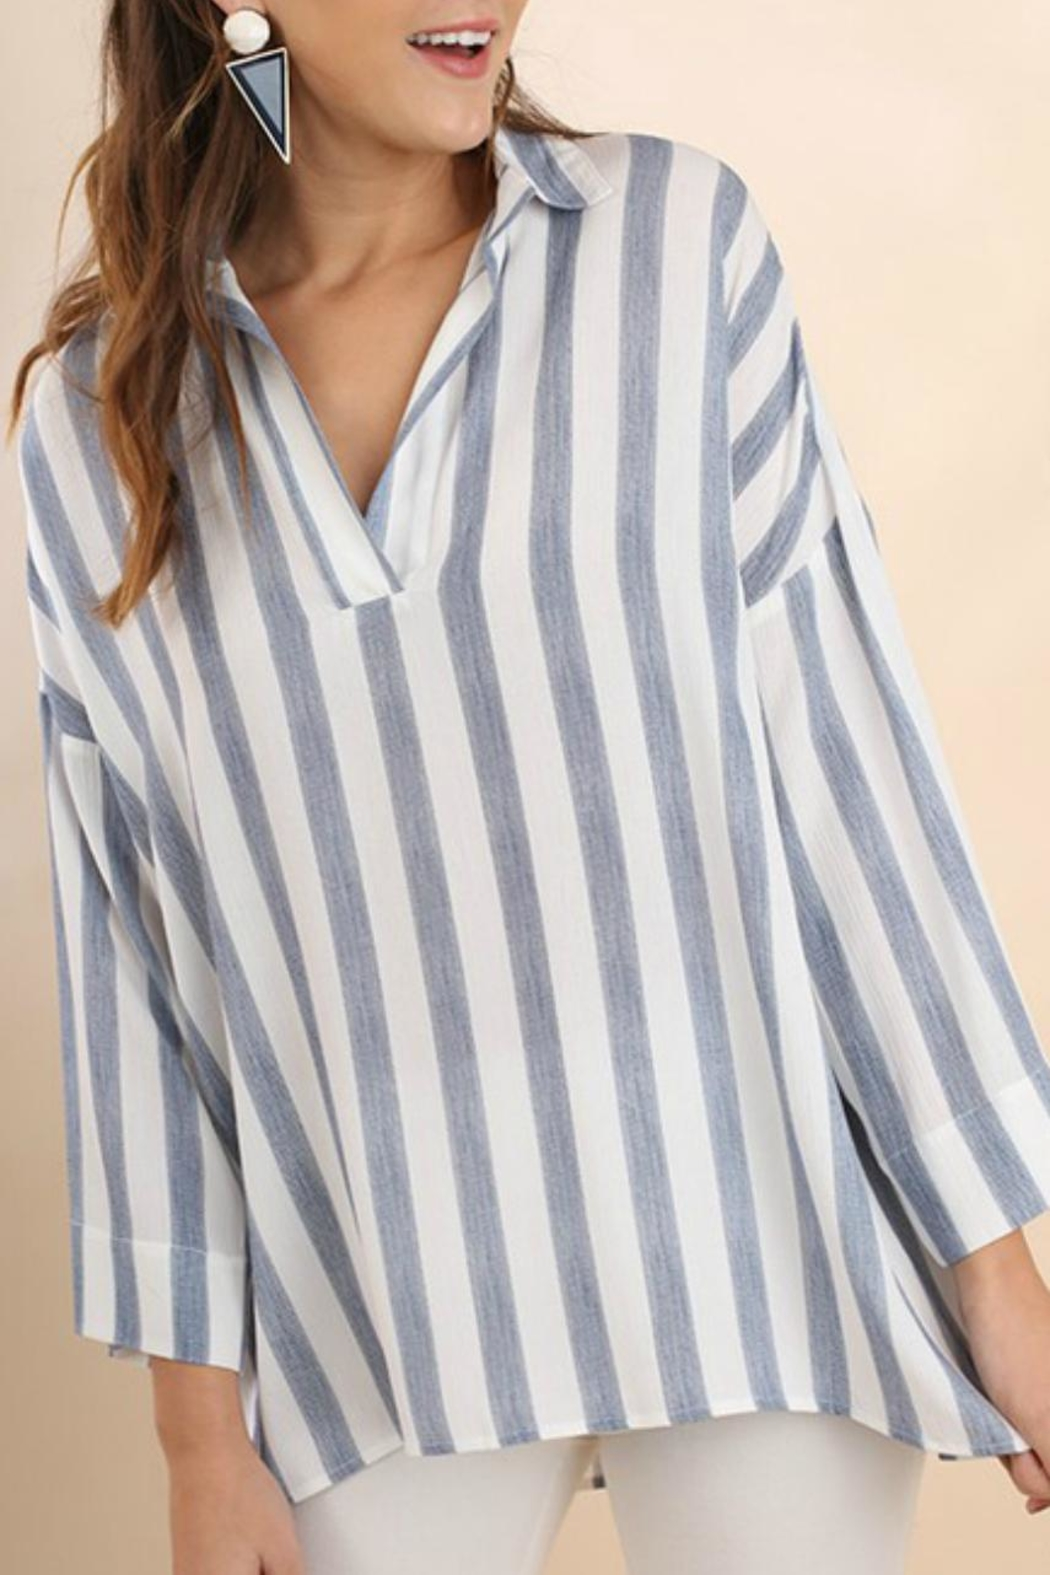 Umgee USA Striped Collared Tunic - Front Cropped Image